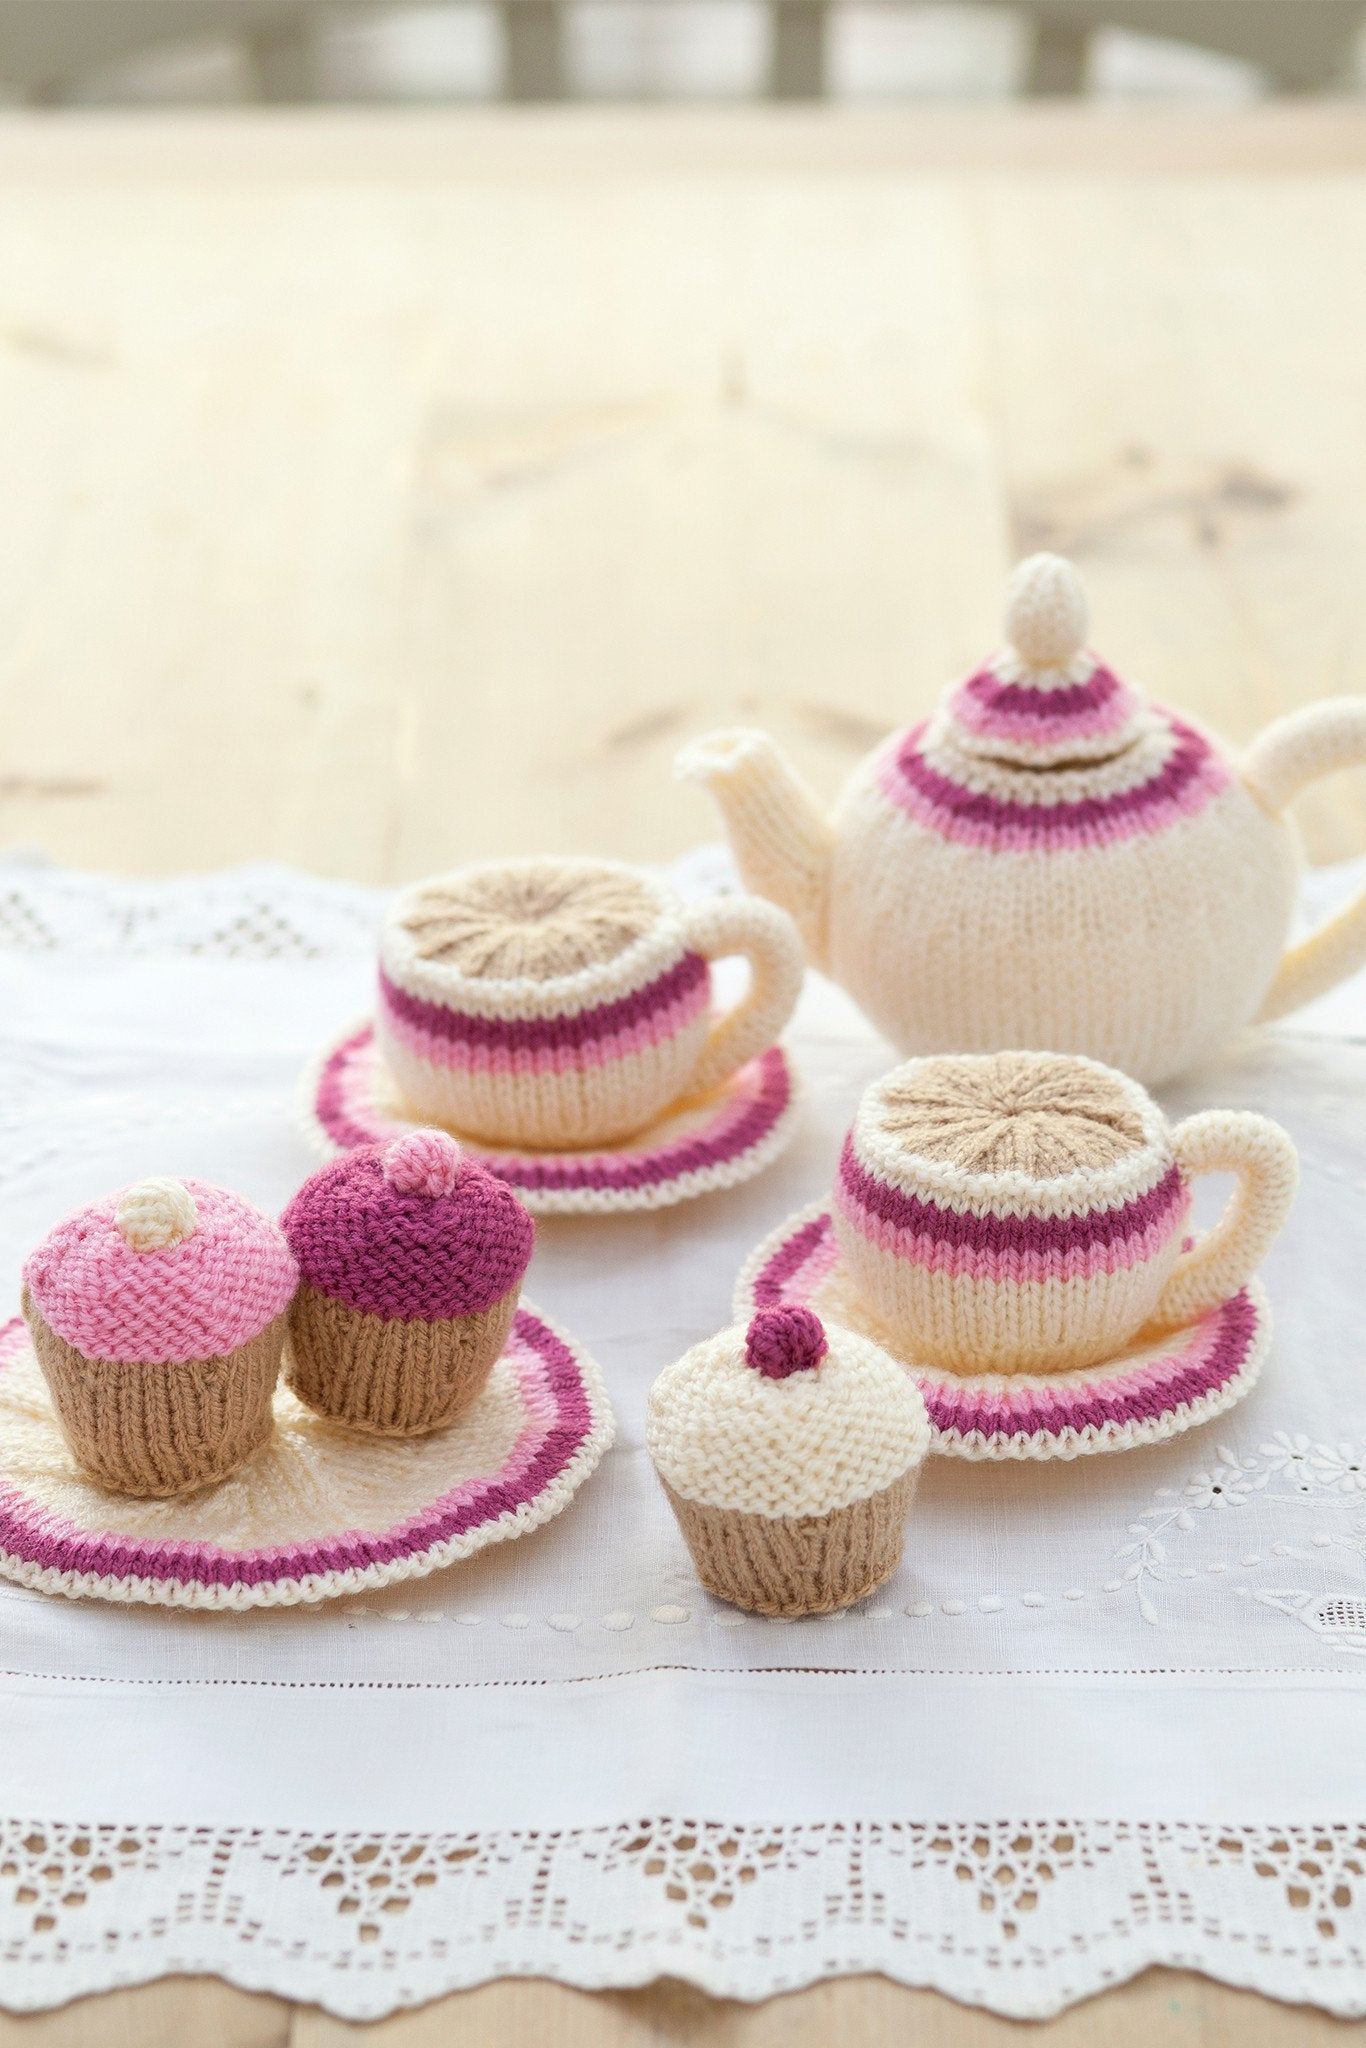 Afternoon tea set knitting patterns the knitting network afternoon tea set knitting patterns bankloansurffo Image collections